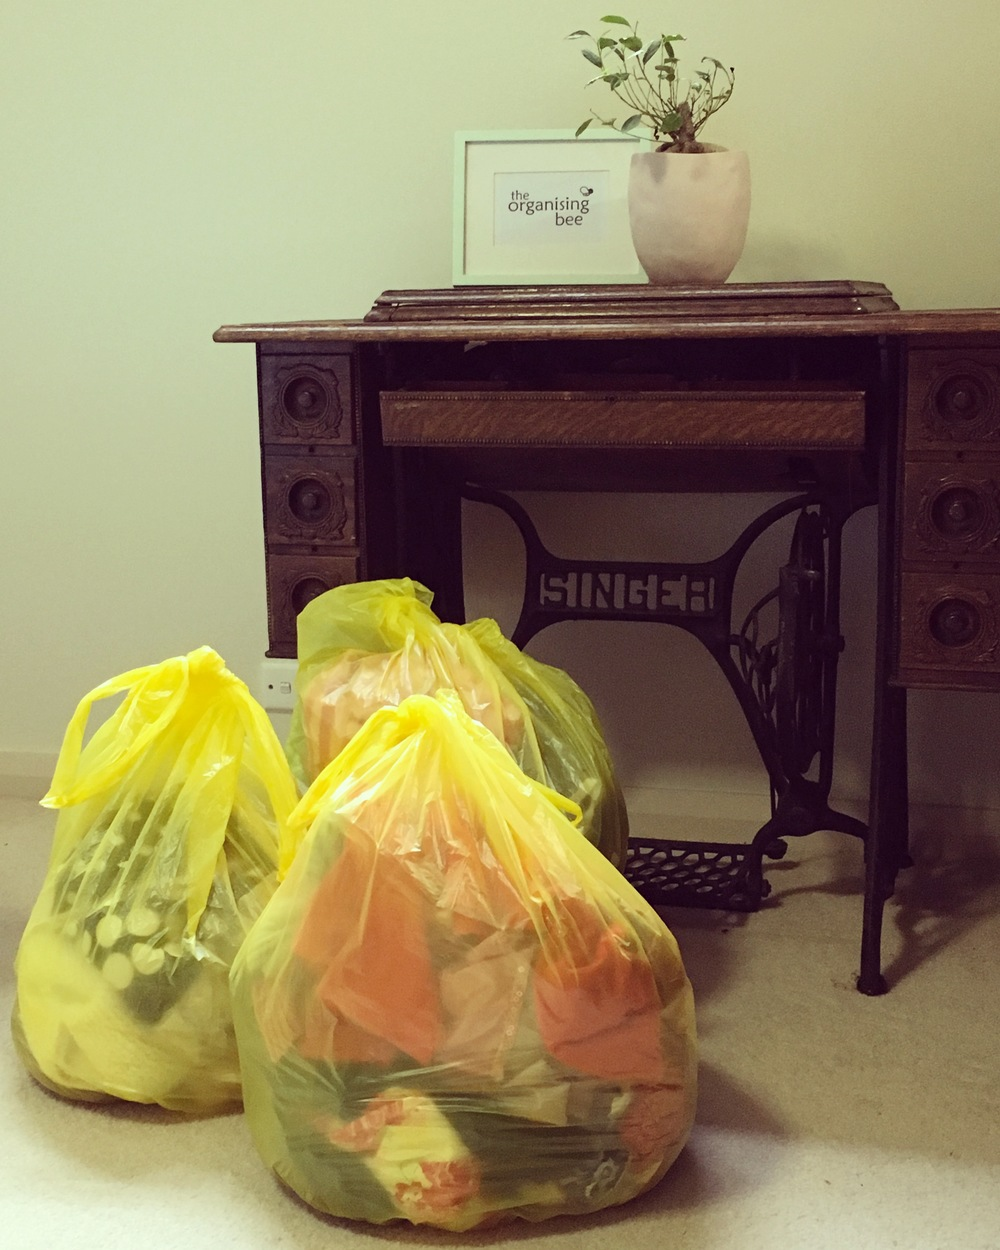 Decluttering complete & bags of clothes are ready for donation. IMAGE BY AMY KENNEDY